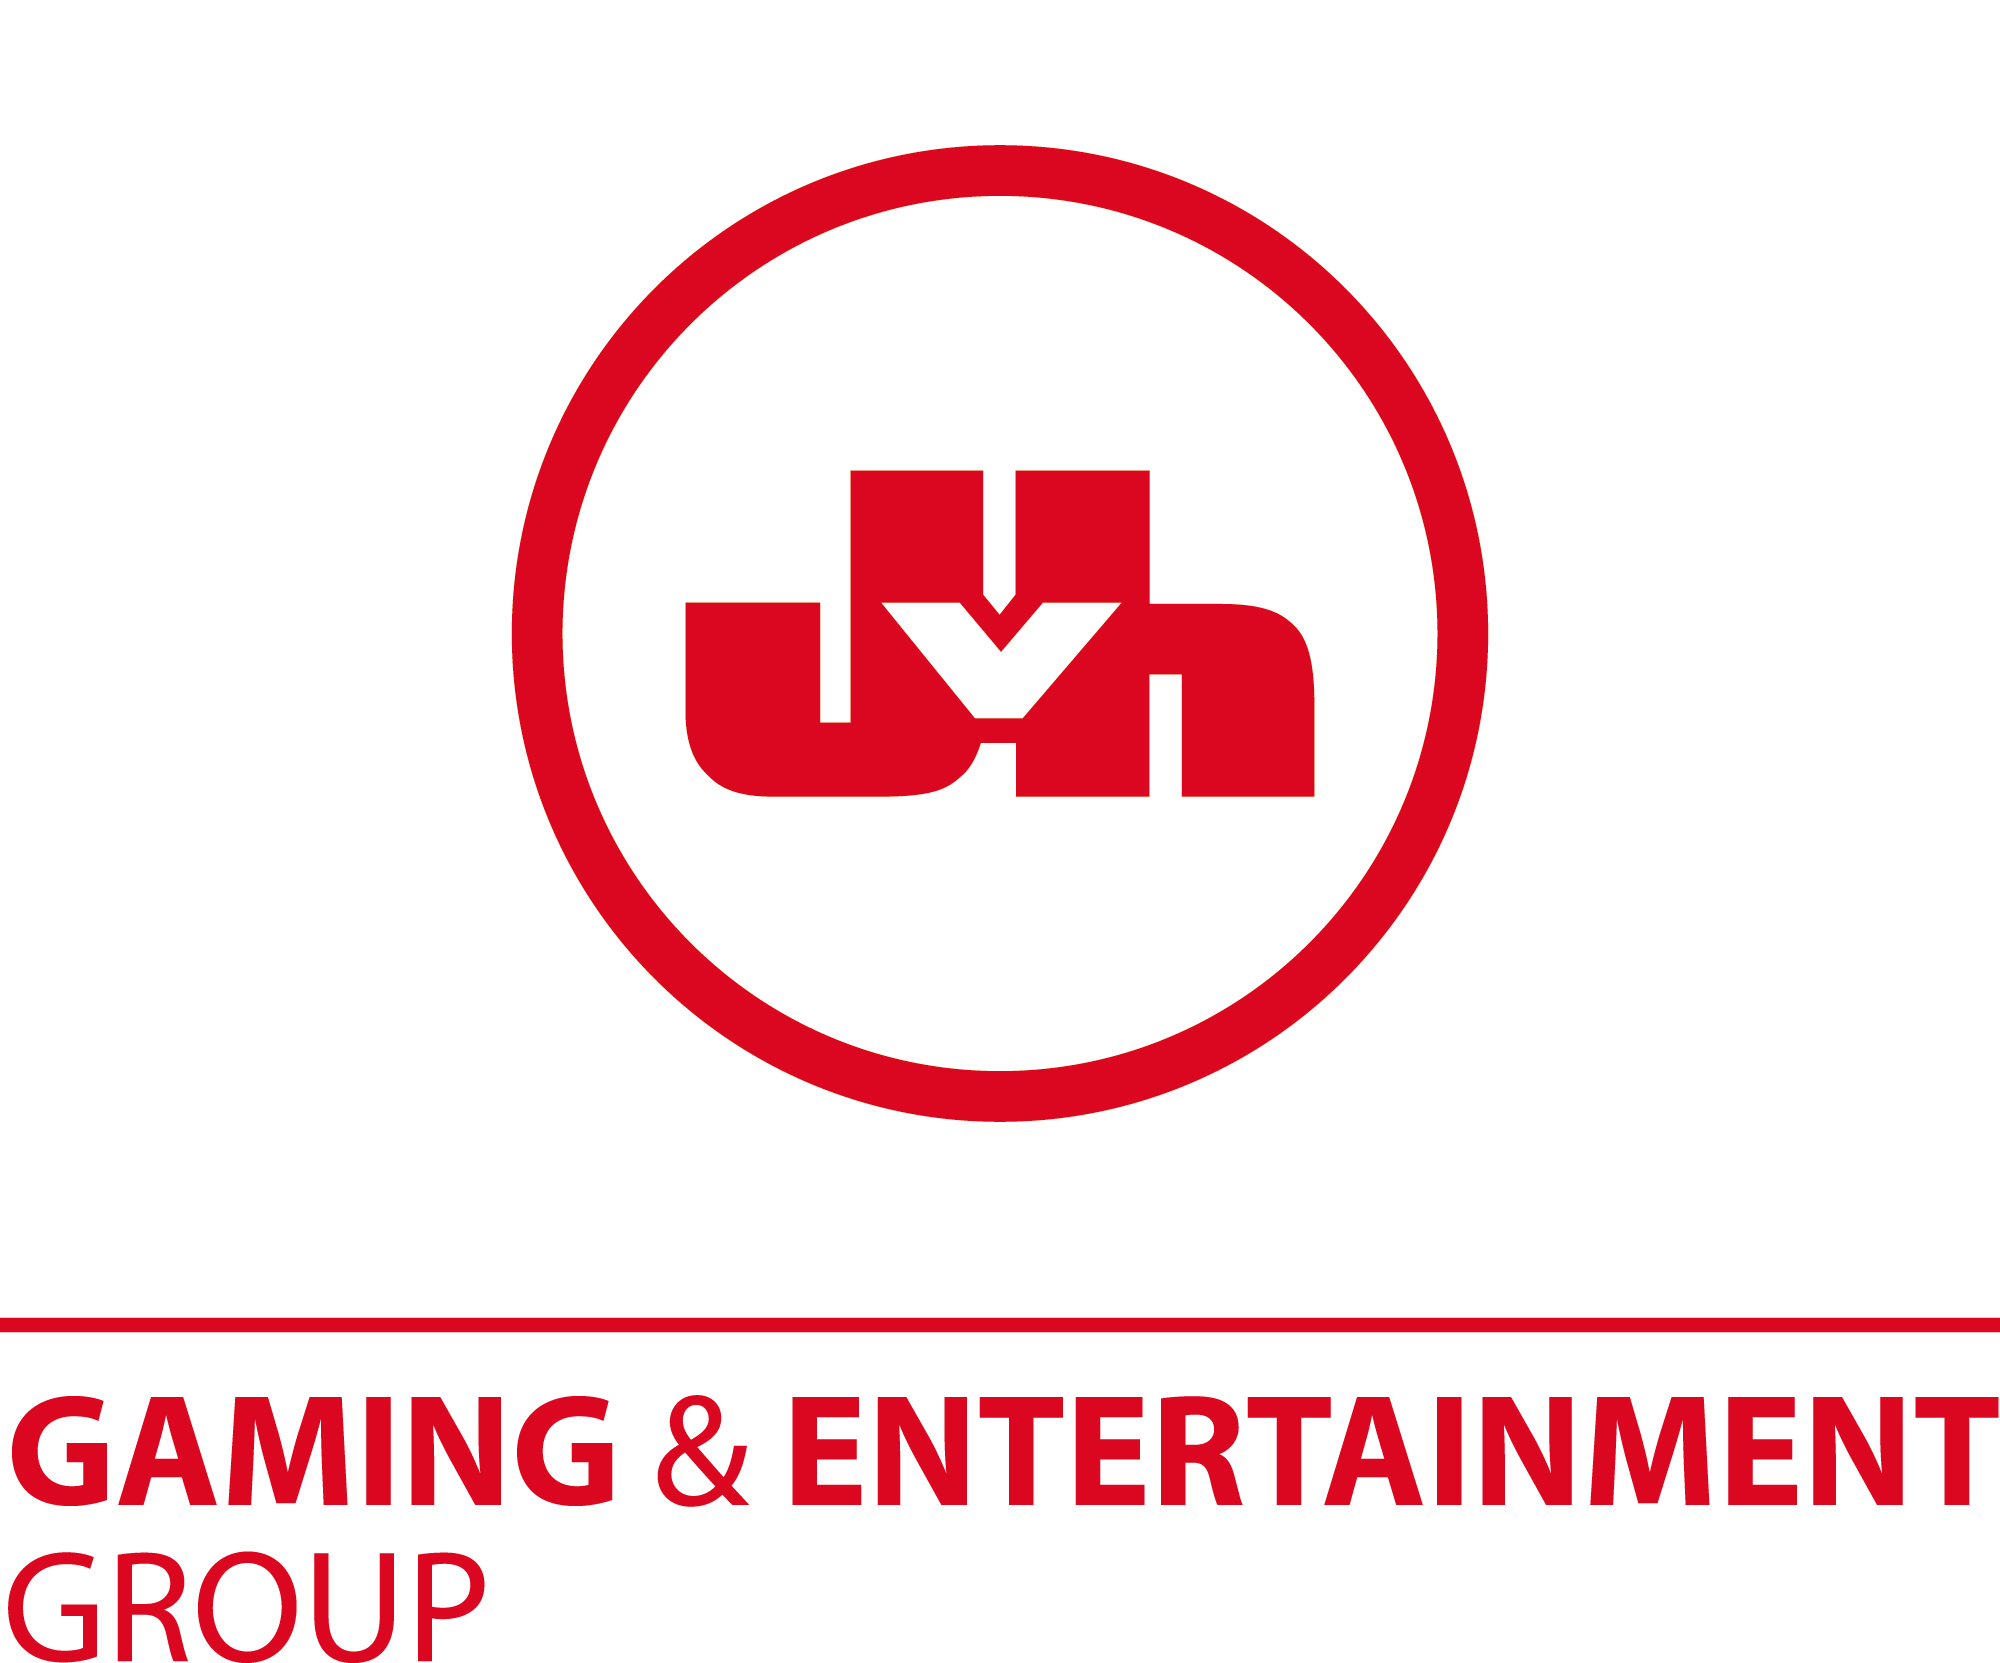 JVH gaming & entertainment